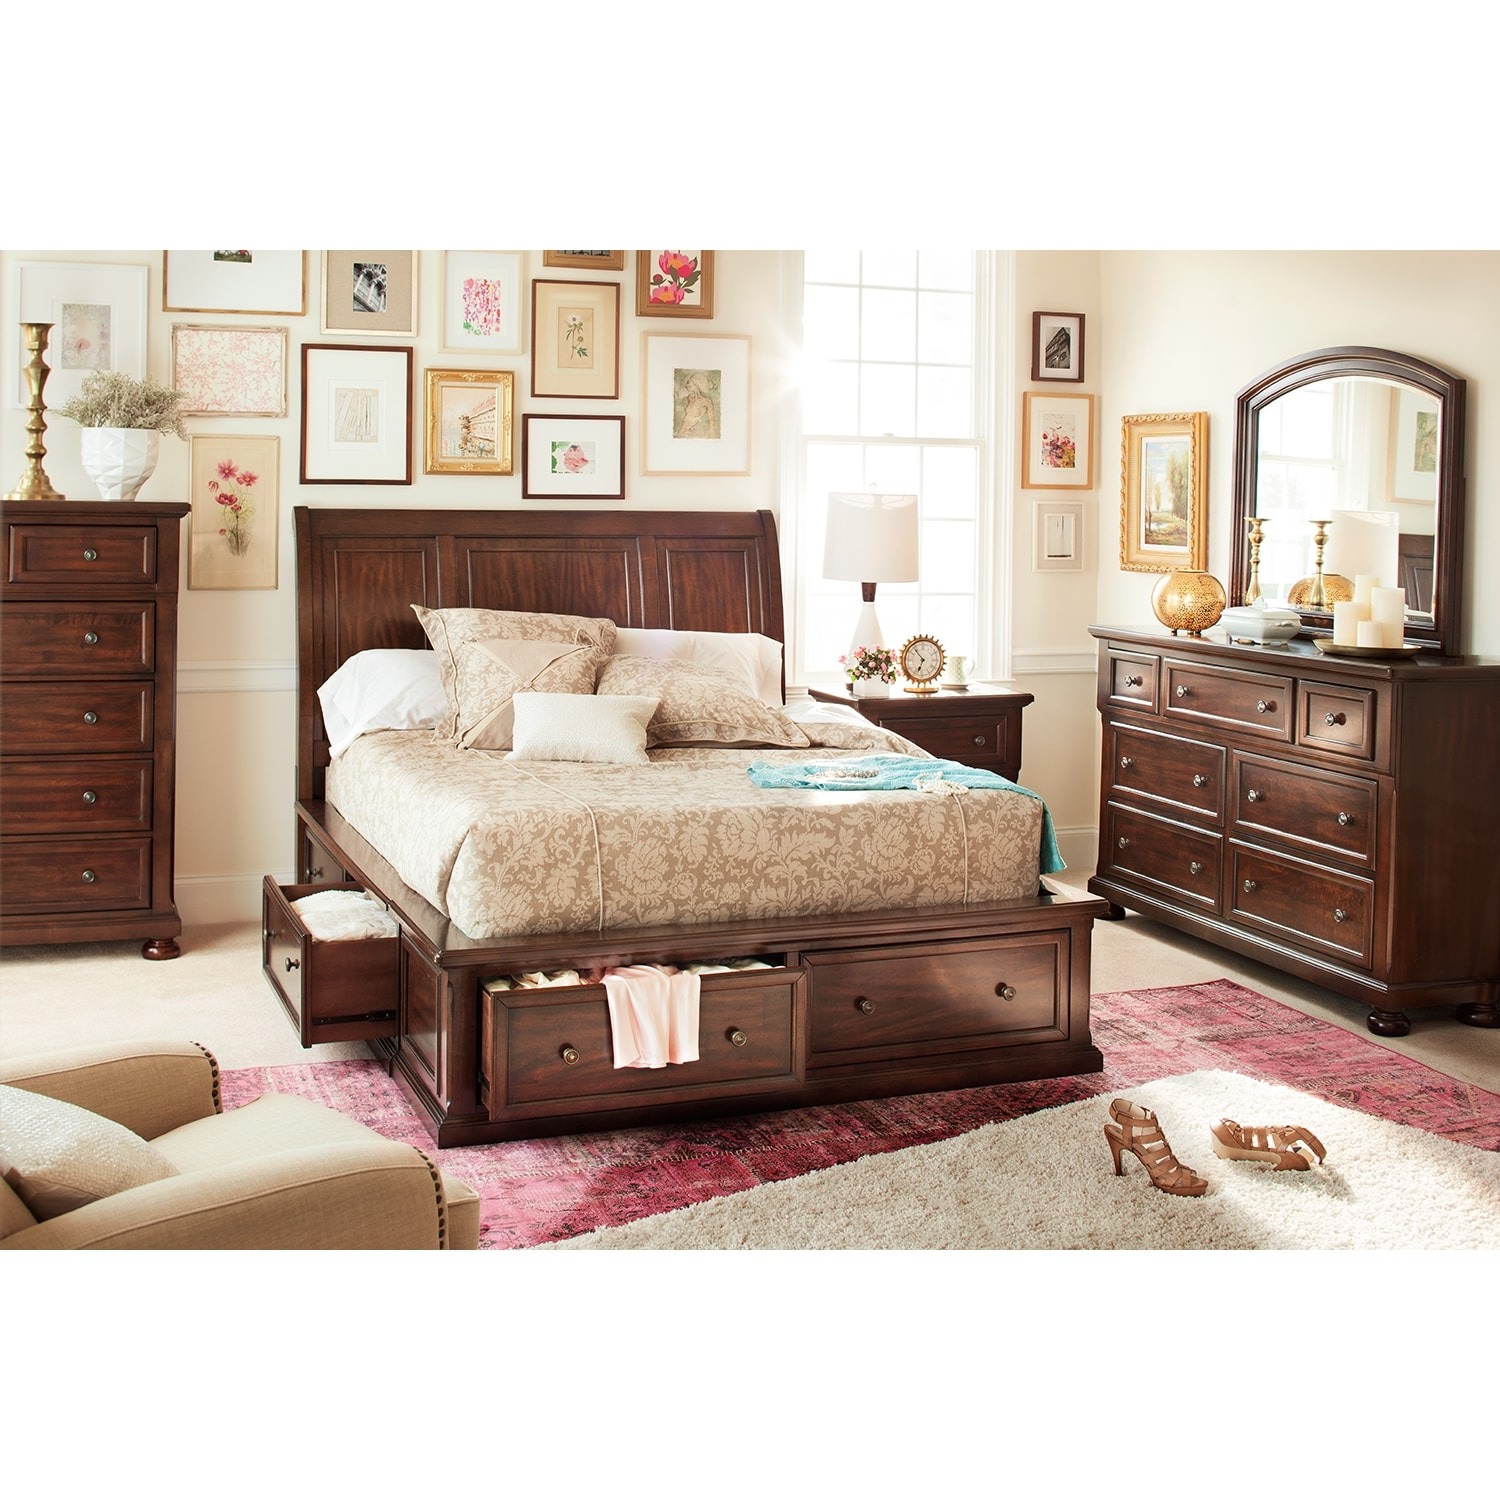 Bedroom Furniture - Hanover 7-Piece King Storage Bedroom Set - Cherry